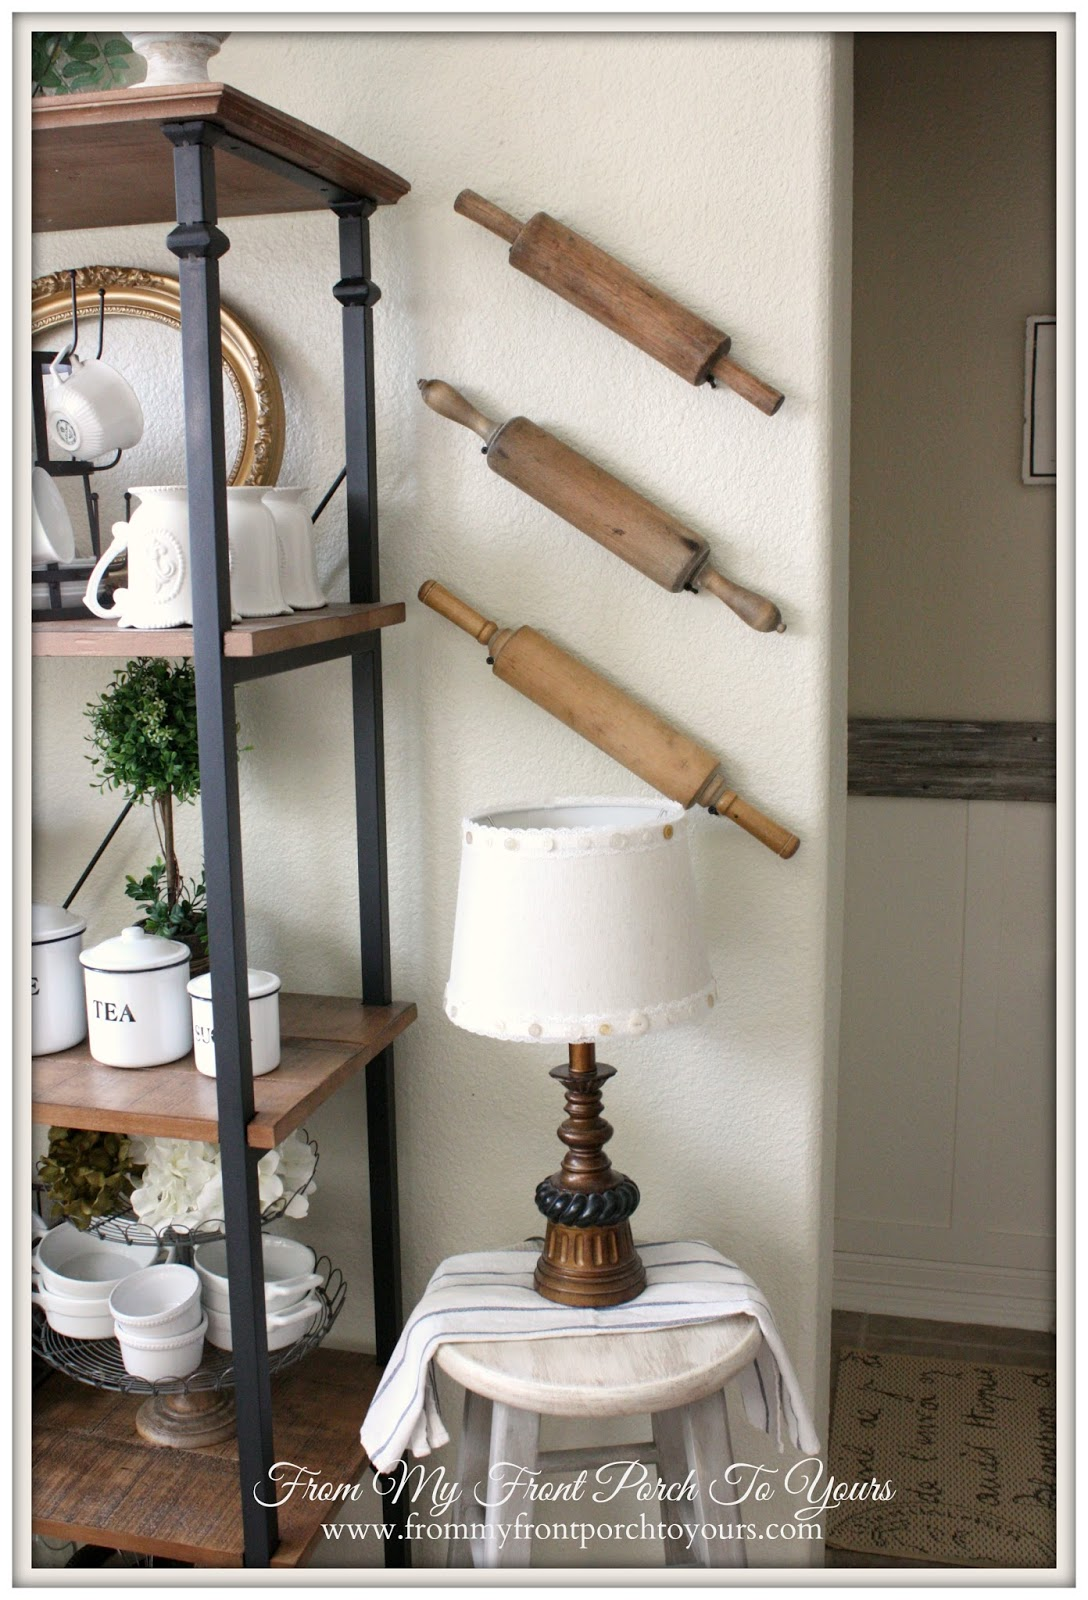 Rolling Pins on Wall-How I Found My Style Sundays- From My Front Porch To Yours